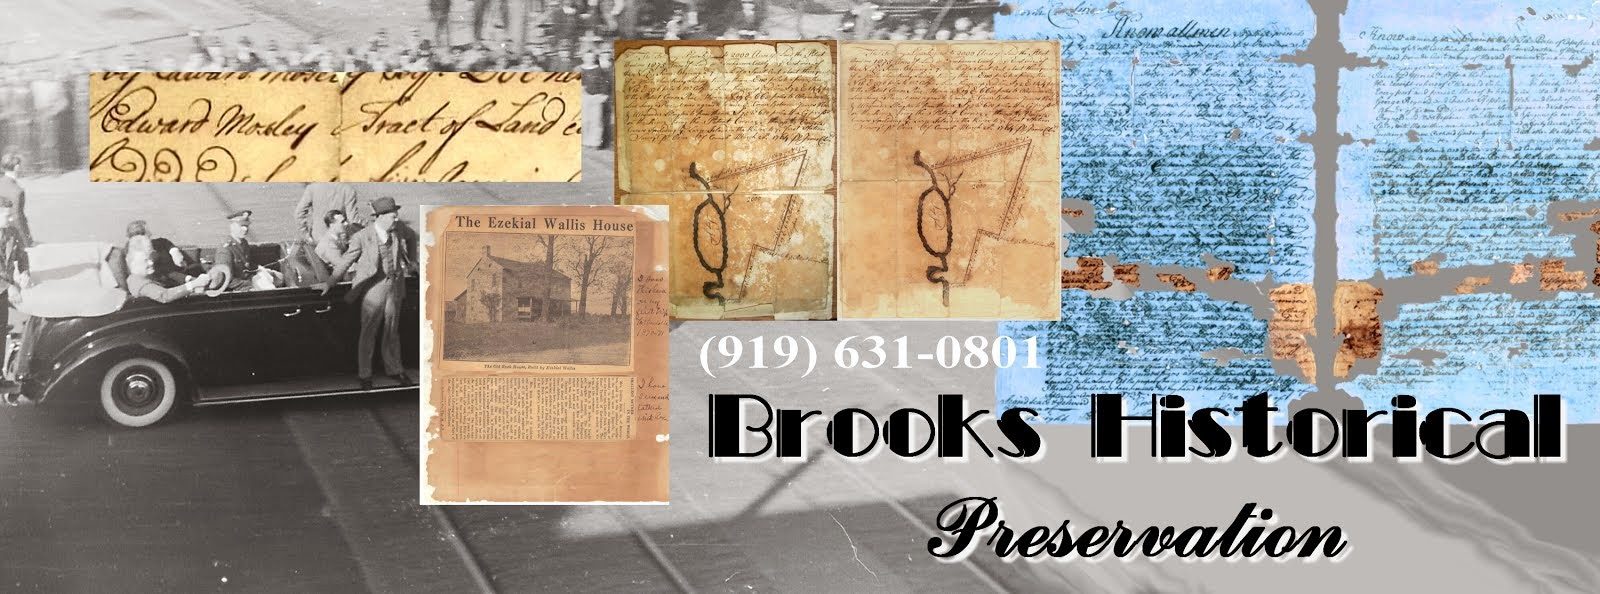 Brooks Historical Preservation